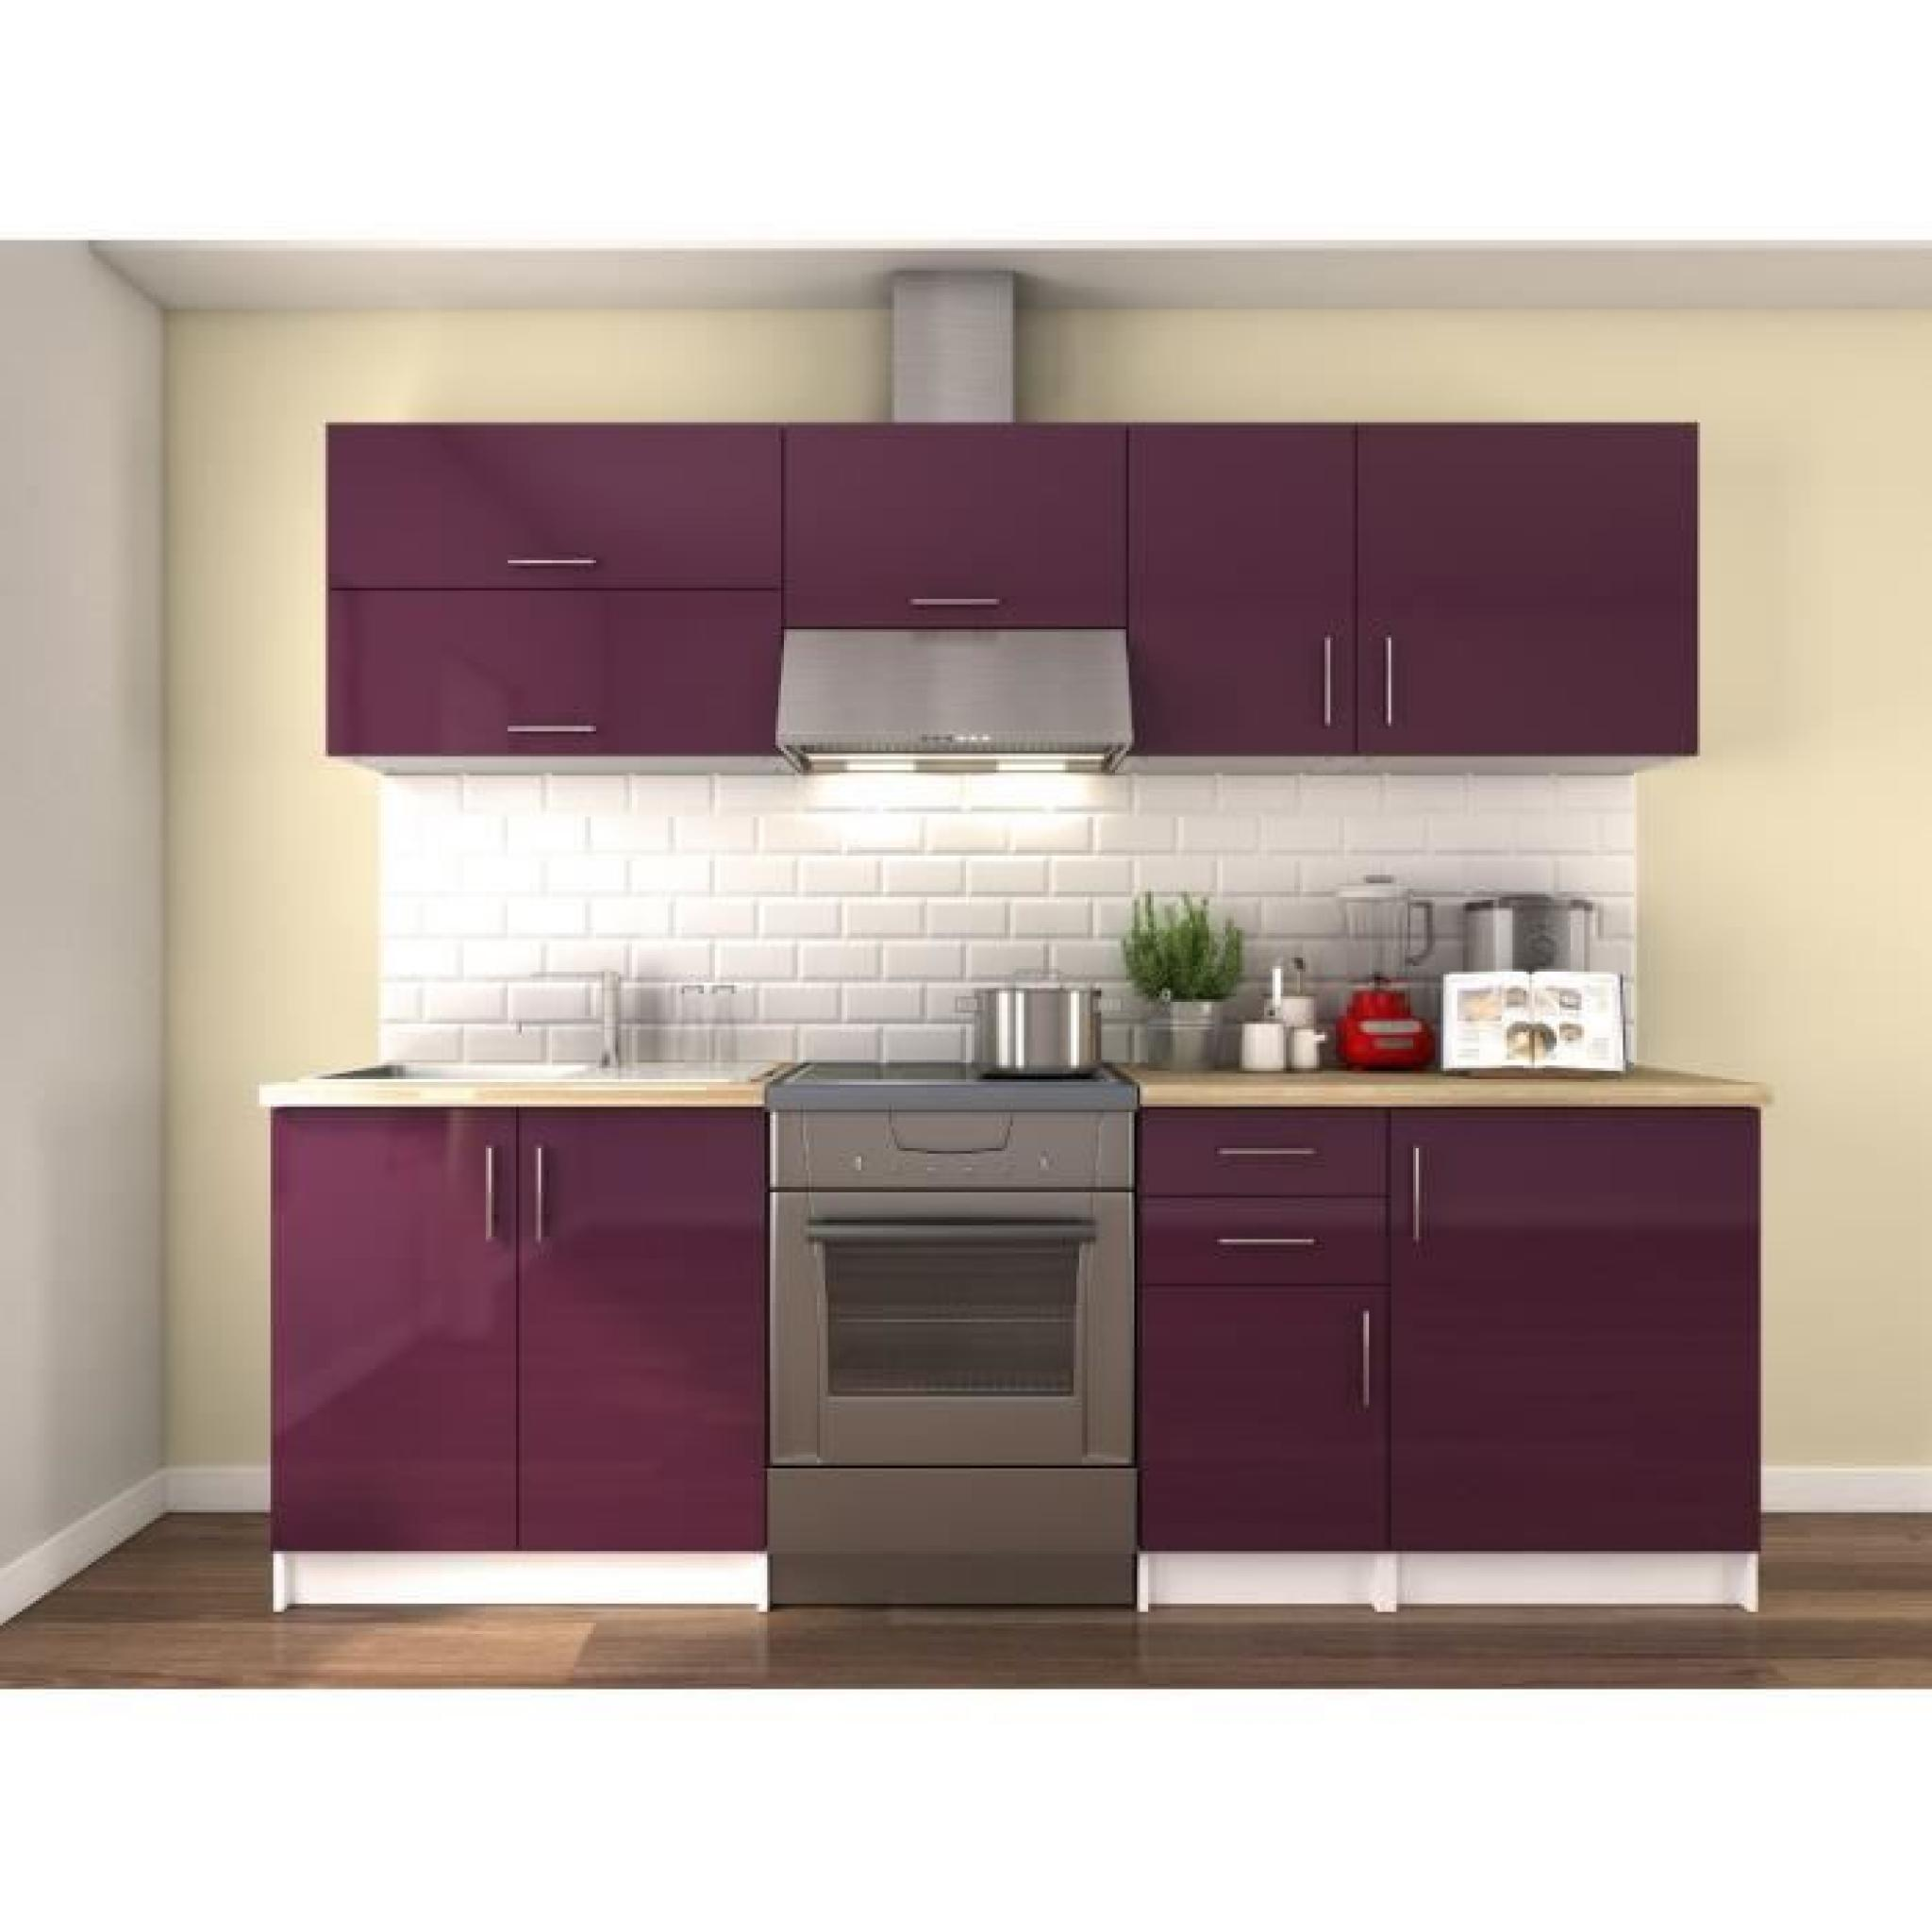 obi cuisine compl te 2m40 laqu bordeaux haute brillance achat vente cuisine complete pas. Black Bedroom Furniture Sets. Home Design Ideas